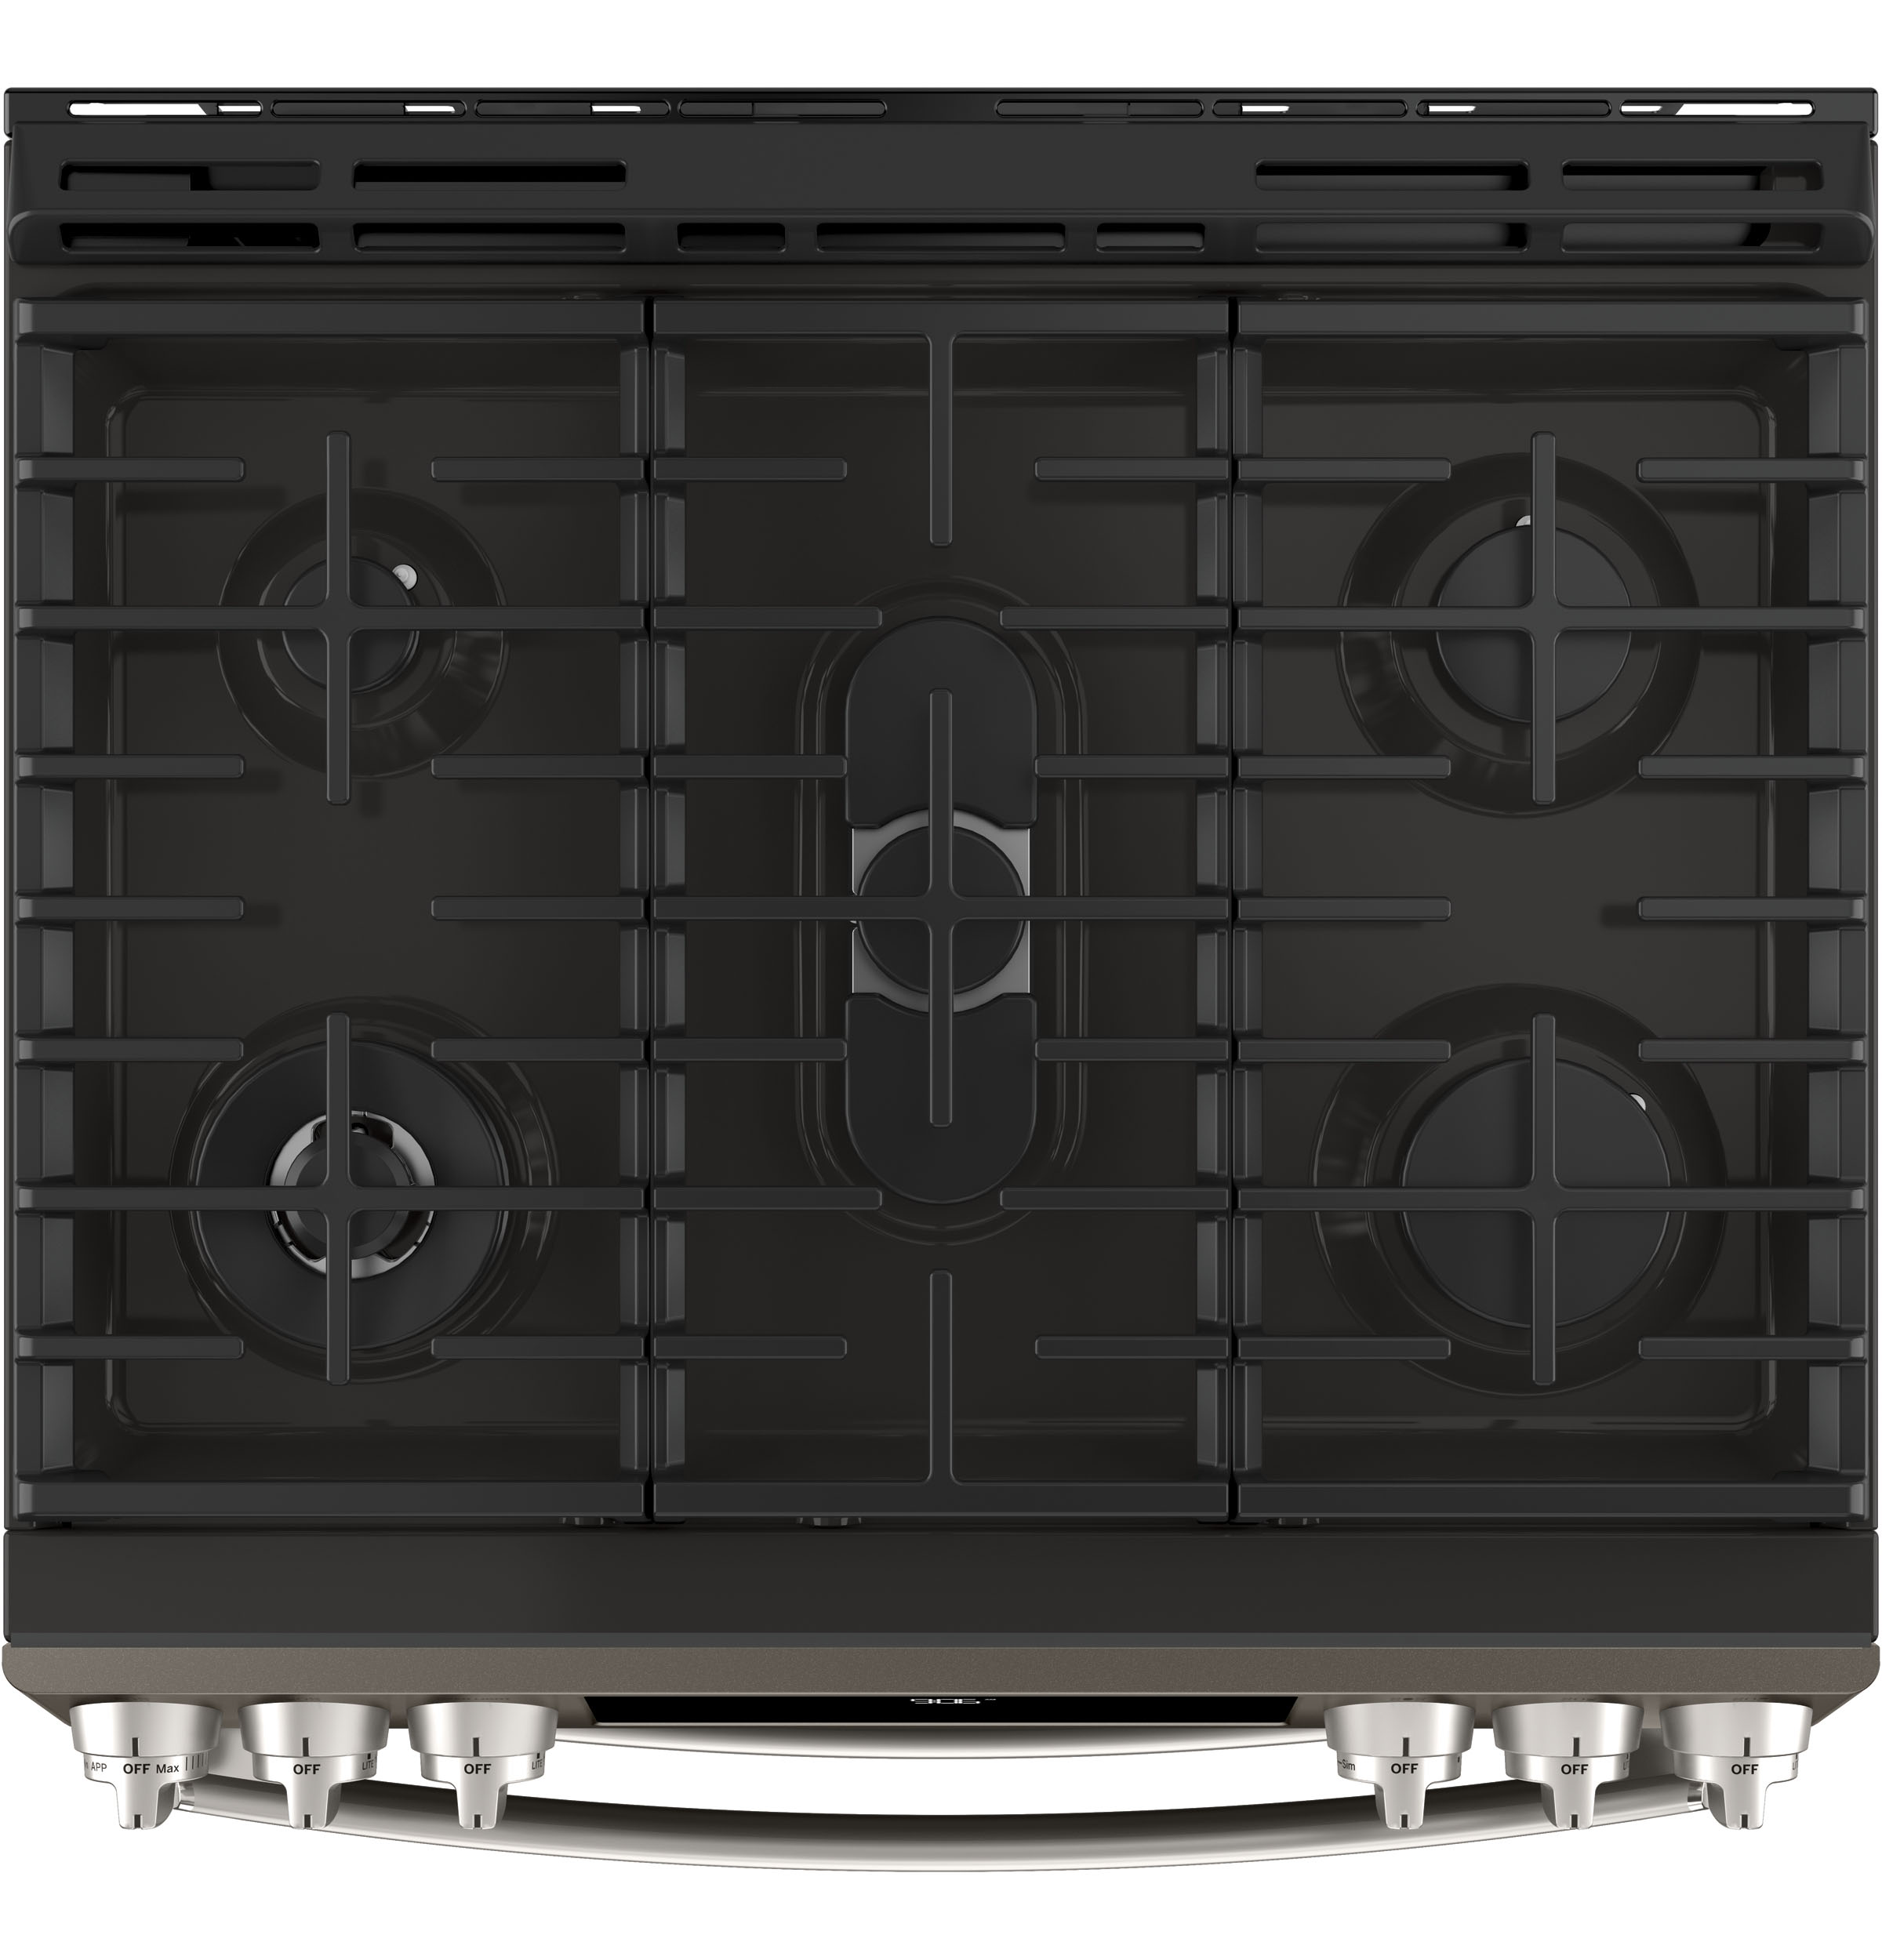 Model: PGS960EELES | GE Profile™ Series 30